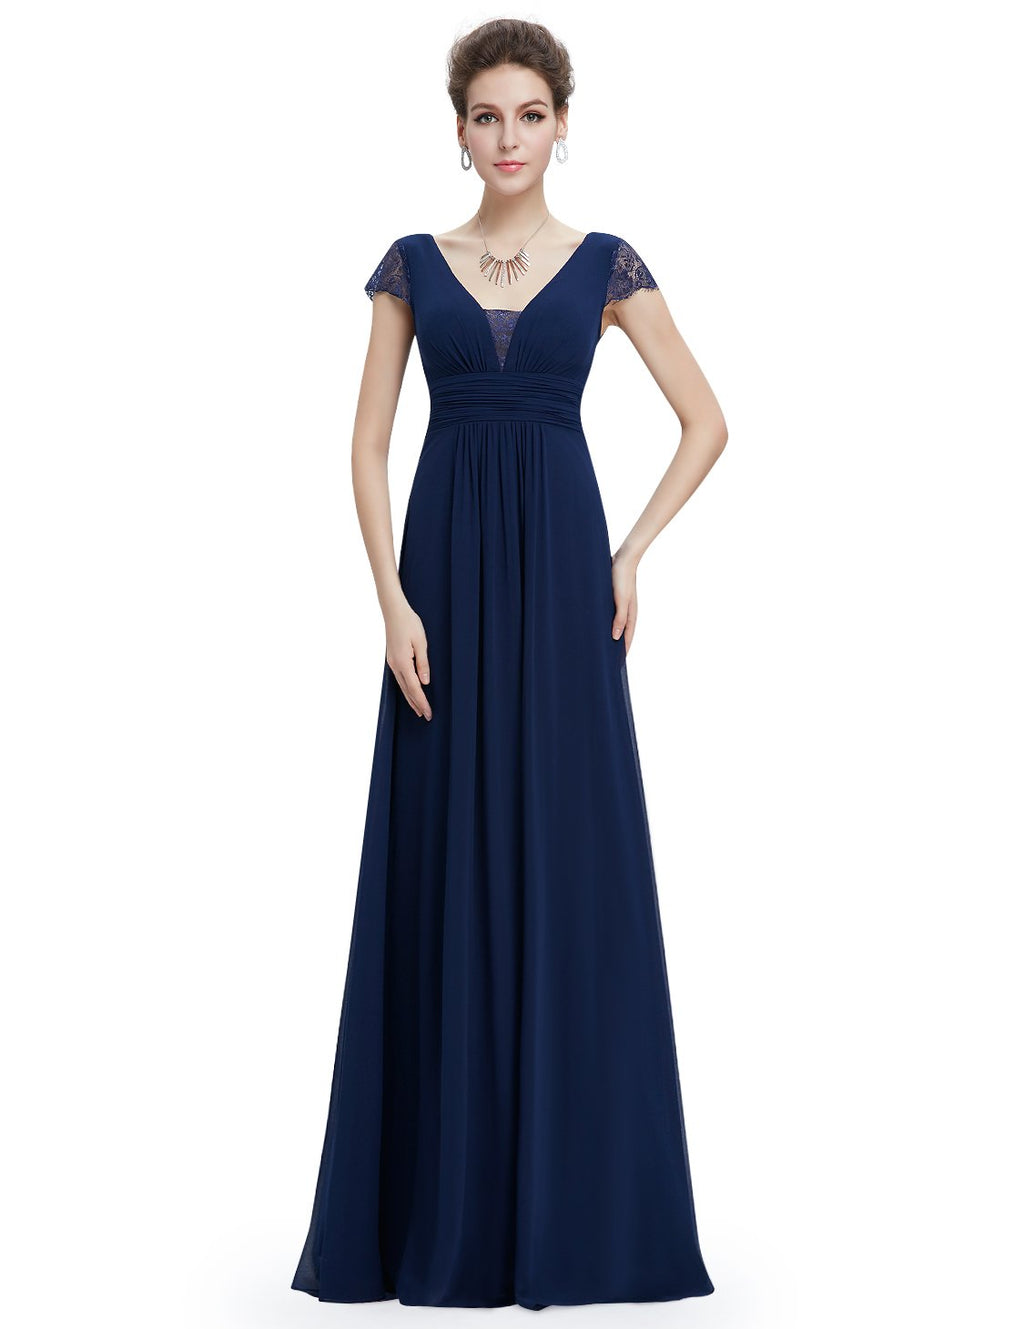 Short Sleeves Long Dress Navy Blue